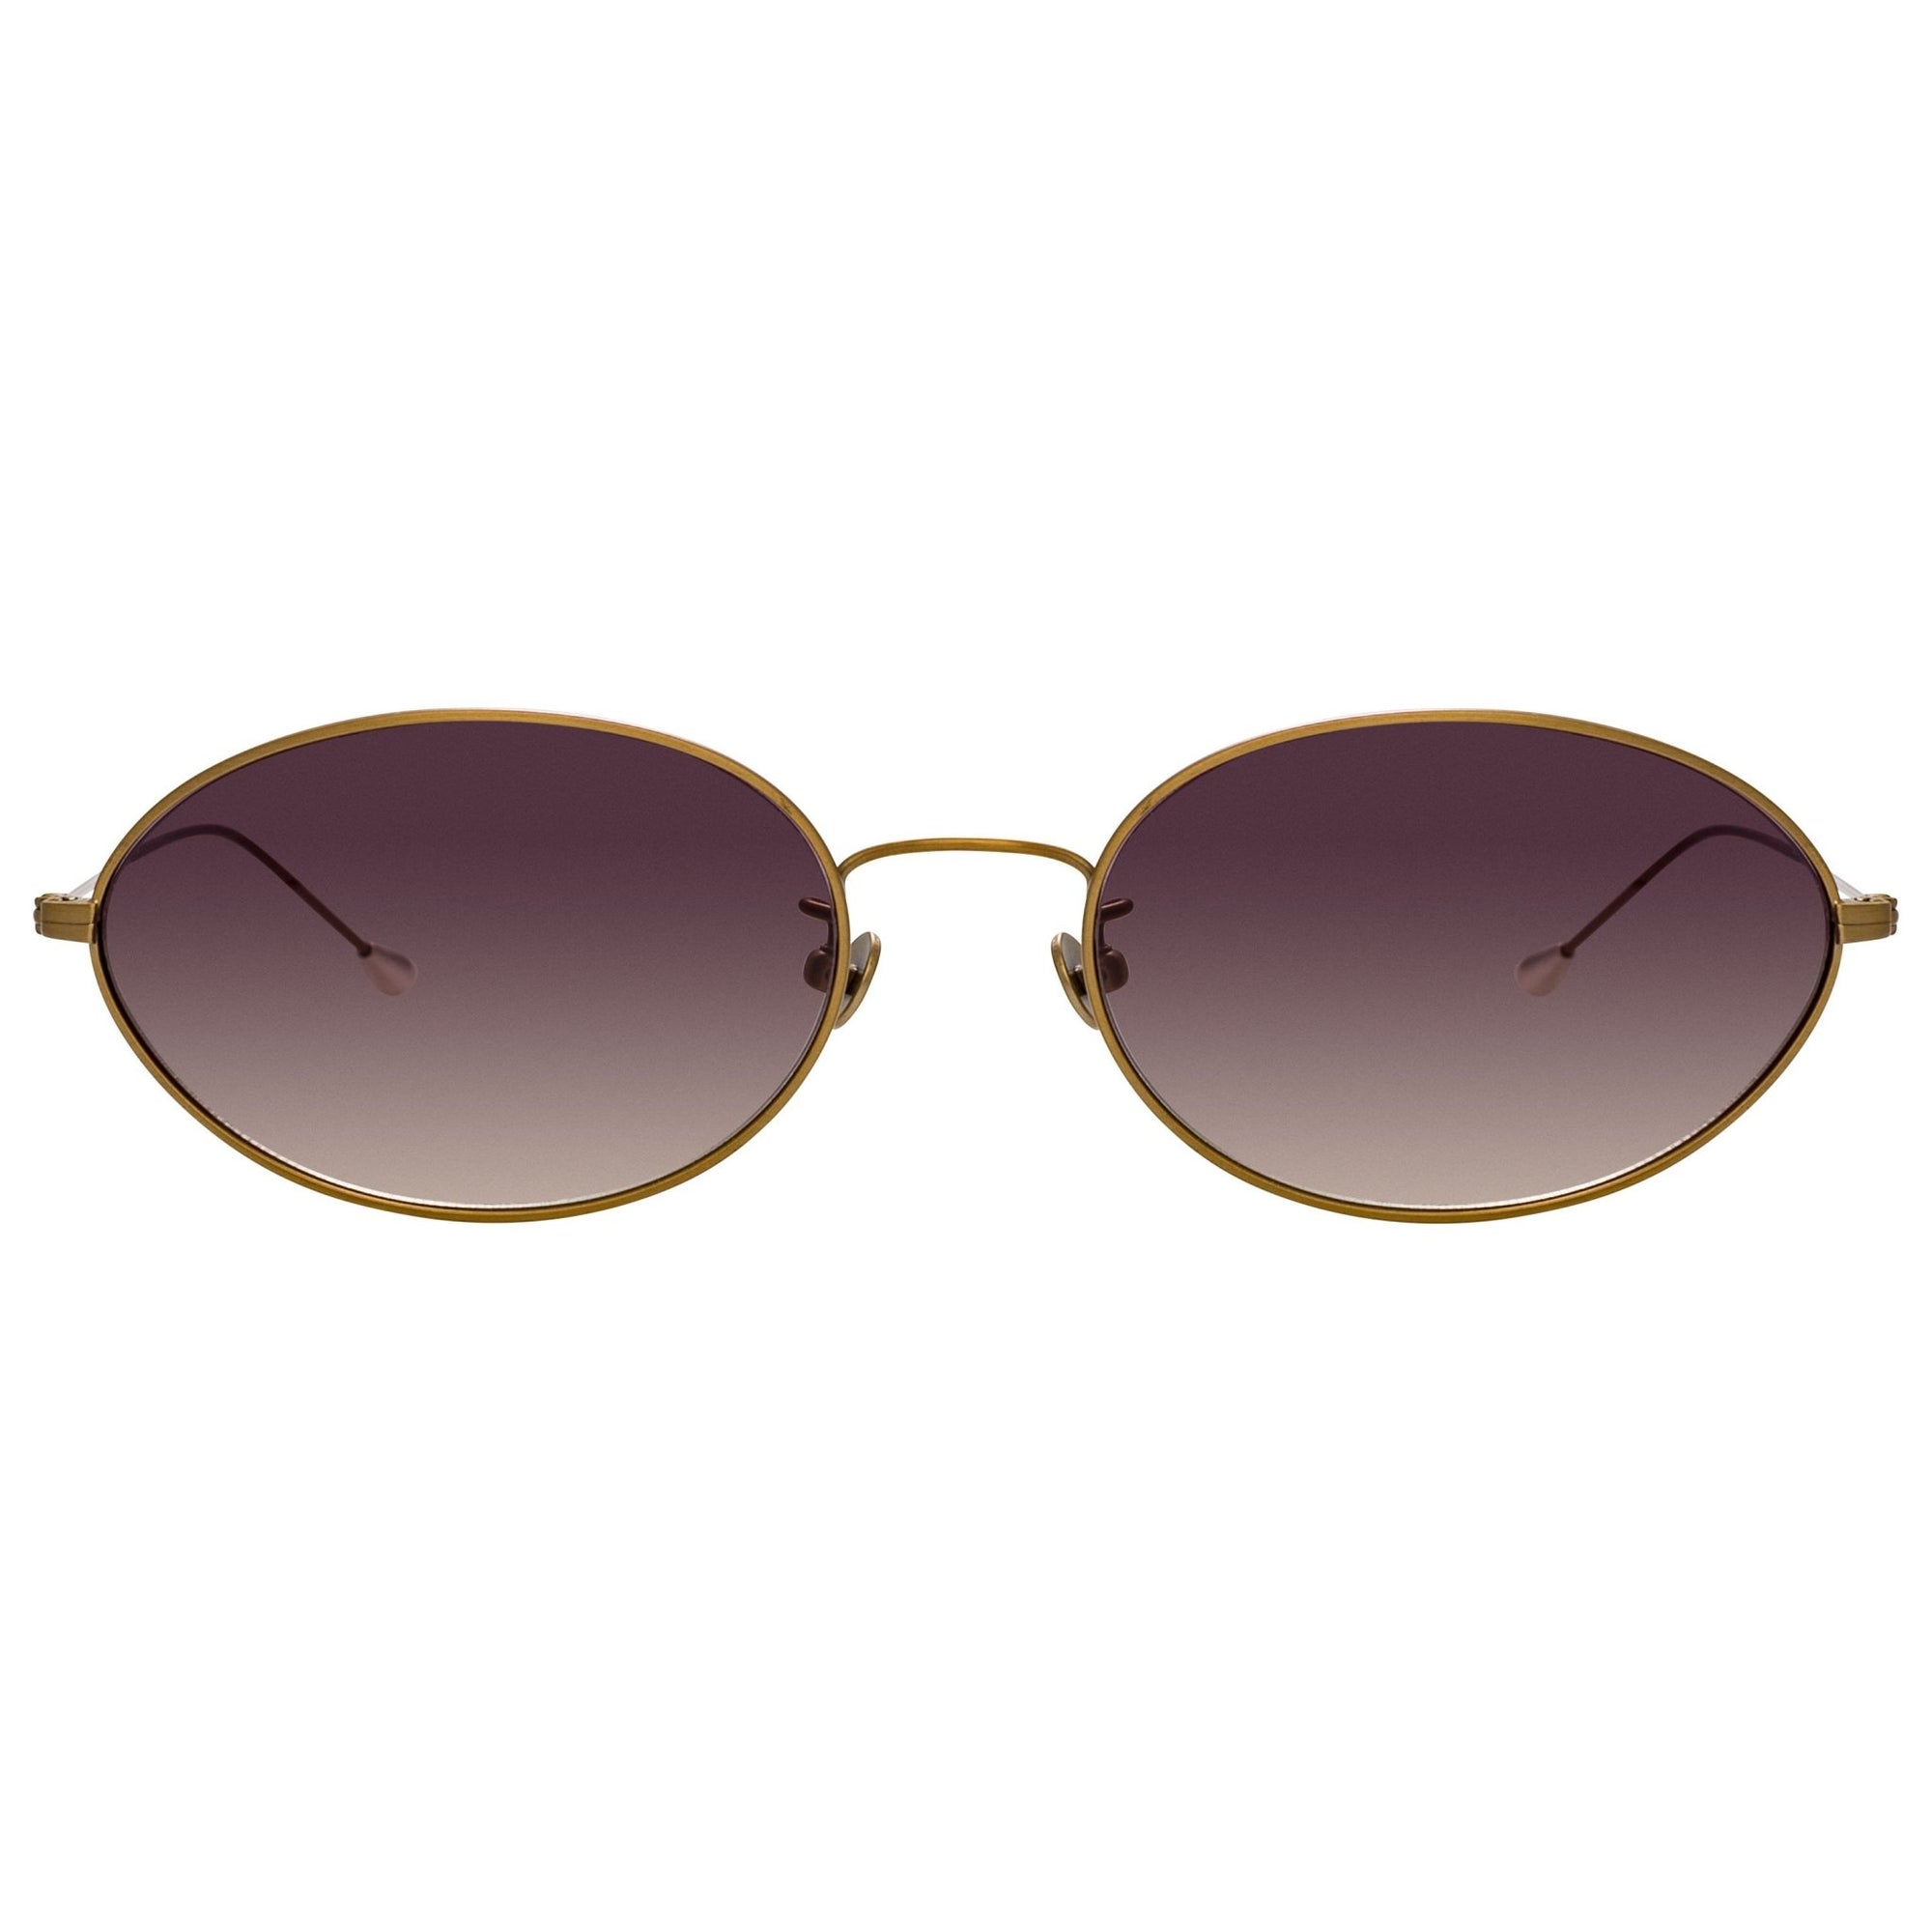 Ann Demeulemeester Sunglasses Titanium Oval Bronze 925 Silver with Grey Lenses CAT3 AD62C3SUN - Watches & Crystals